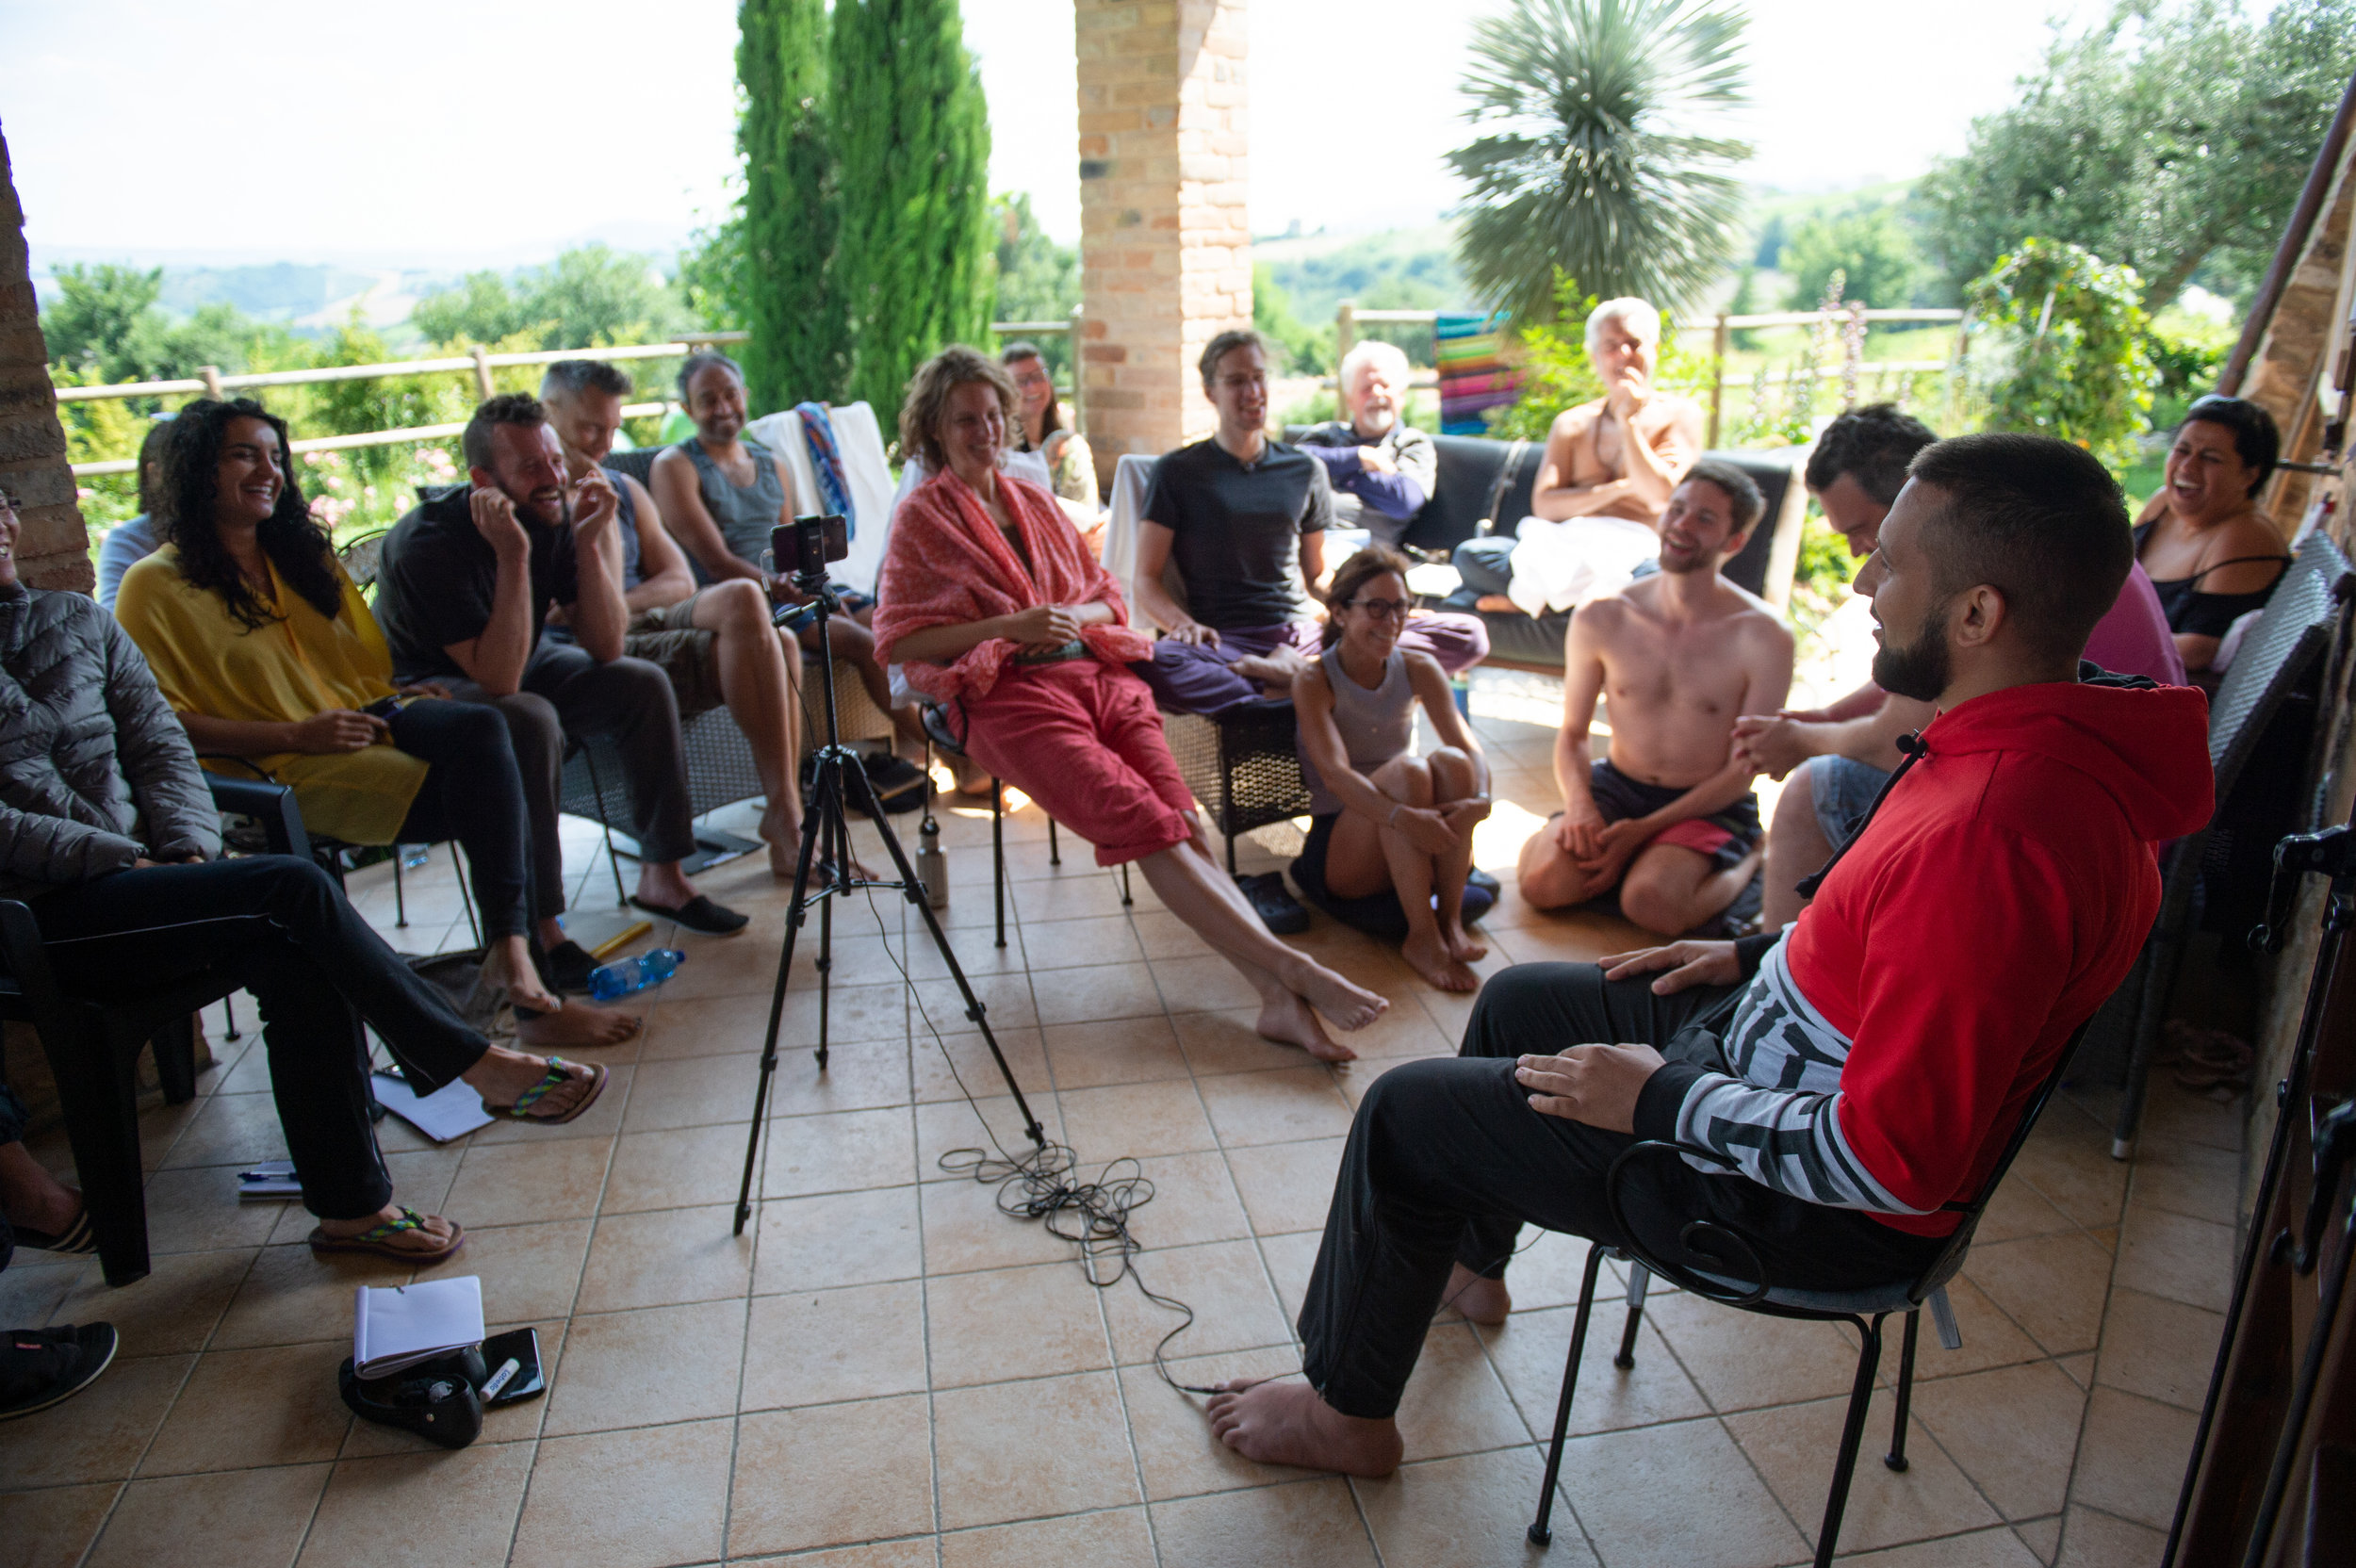 Evening - After dinner, we meet to hear two life stories. Each person is given one hour to tell the story of their life. The next morning the group discusses the stories and gives feedback. Each person will receive a video of their story.